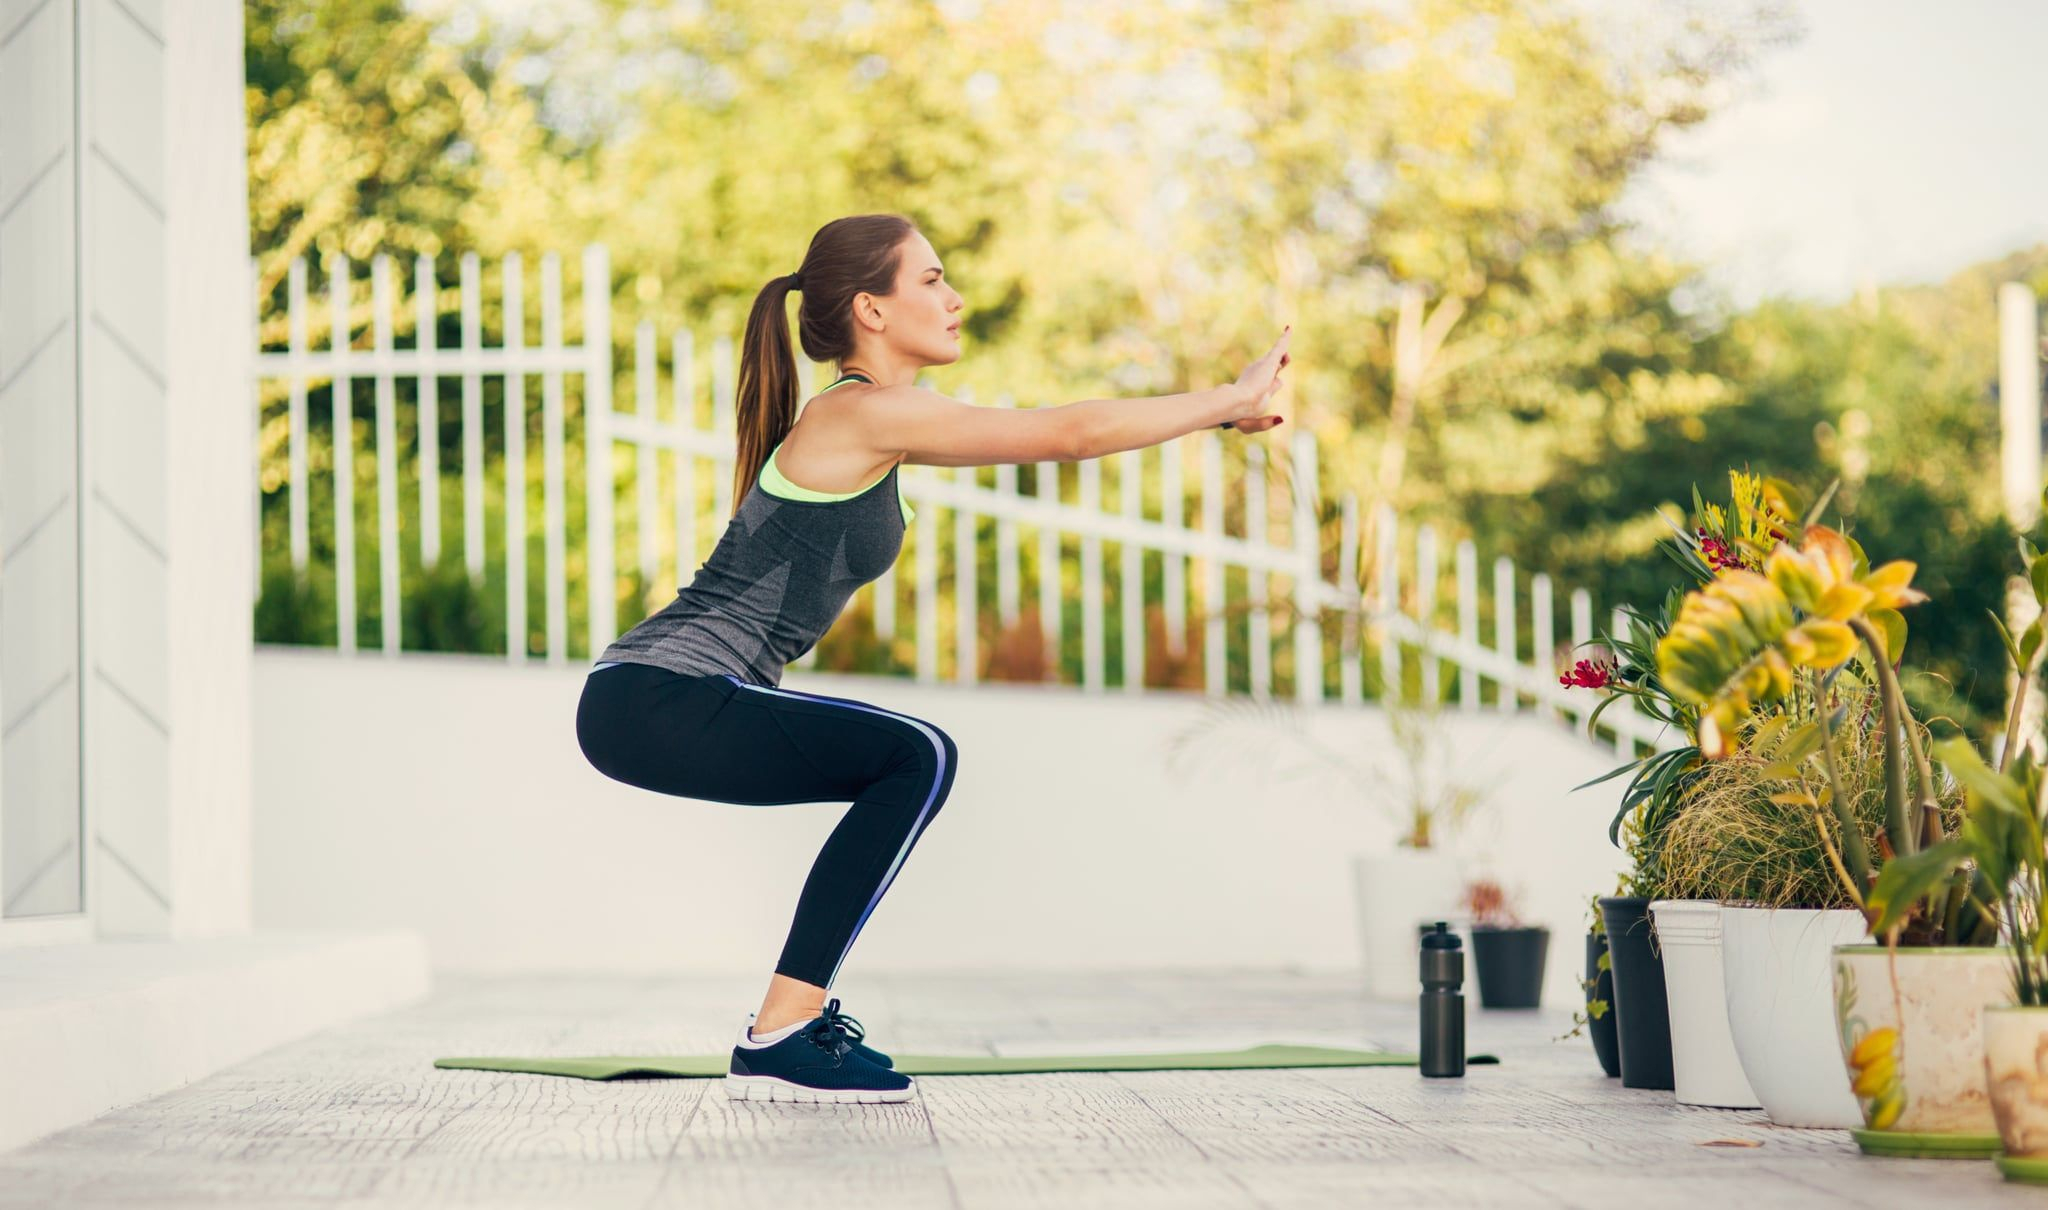 Pin On Leg And Butt Workouts pertaining to Butt And Leg Challenges